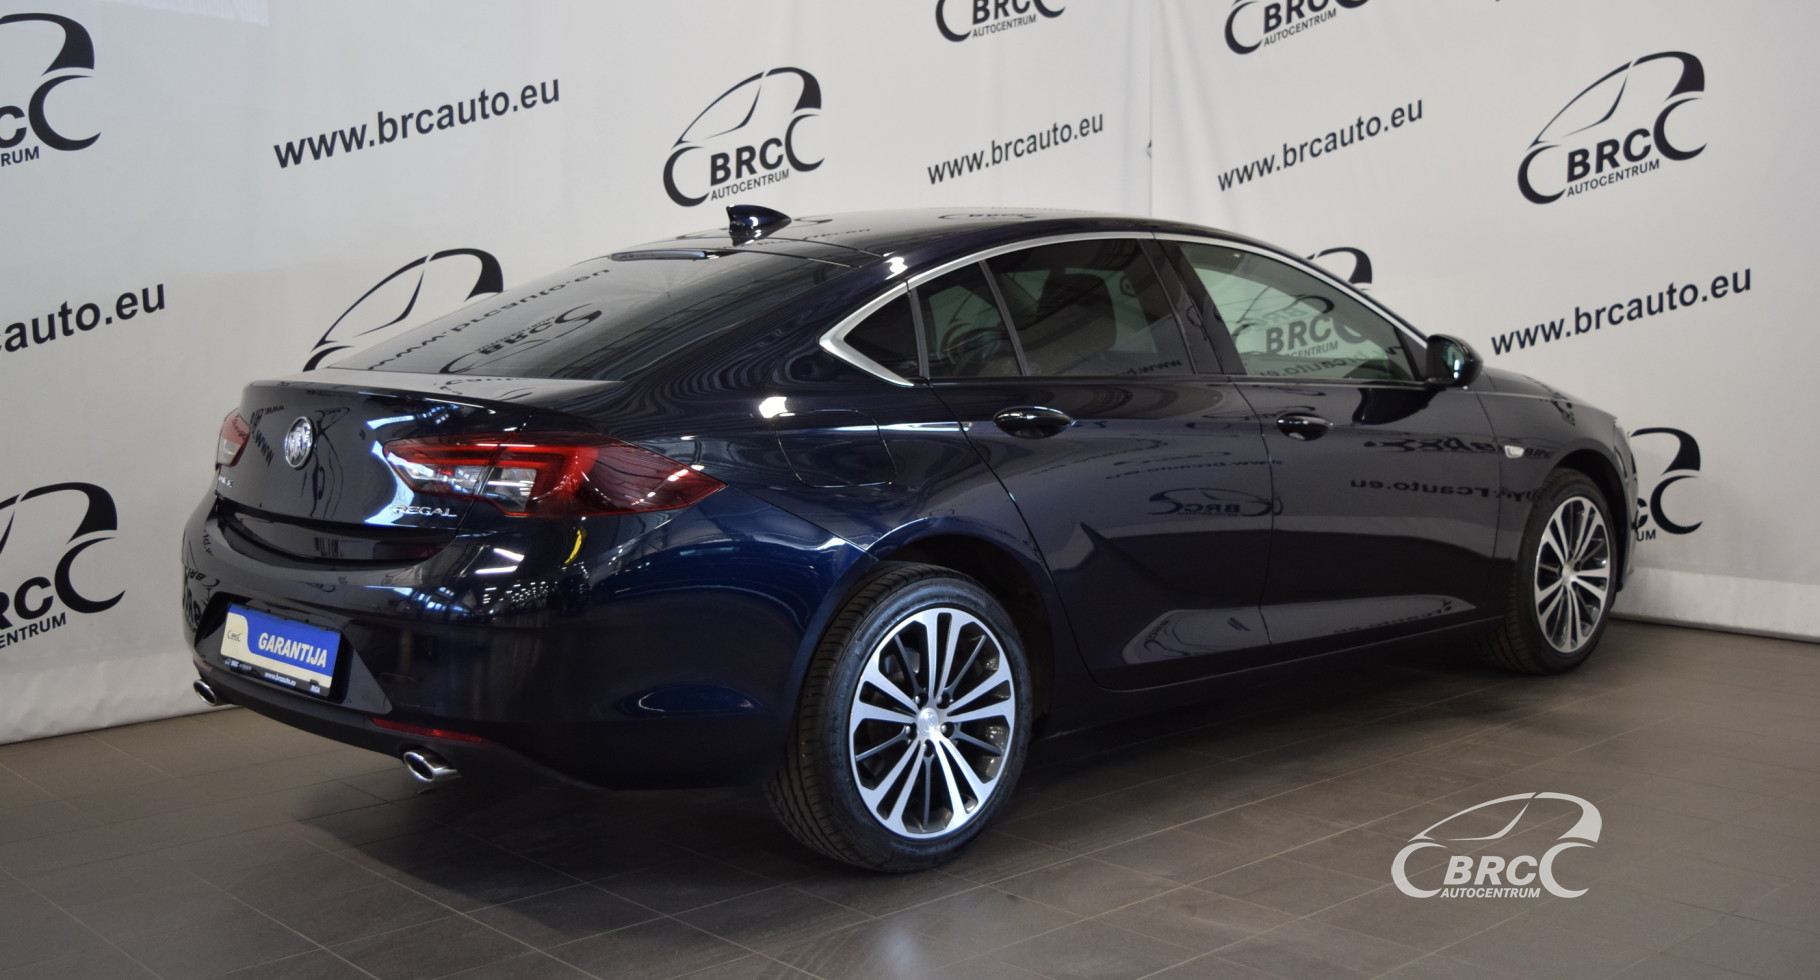 Buick Regal A/T